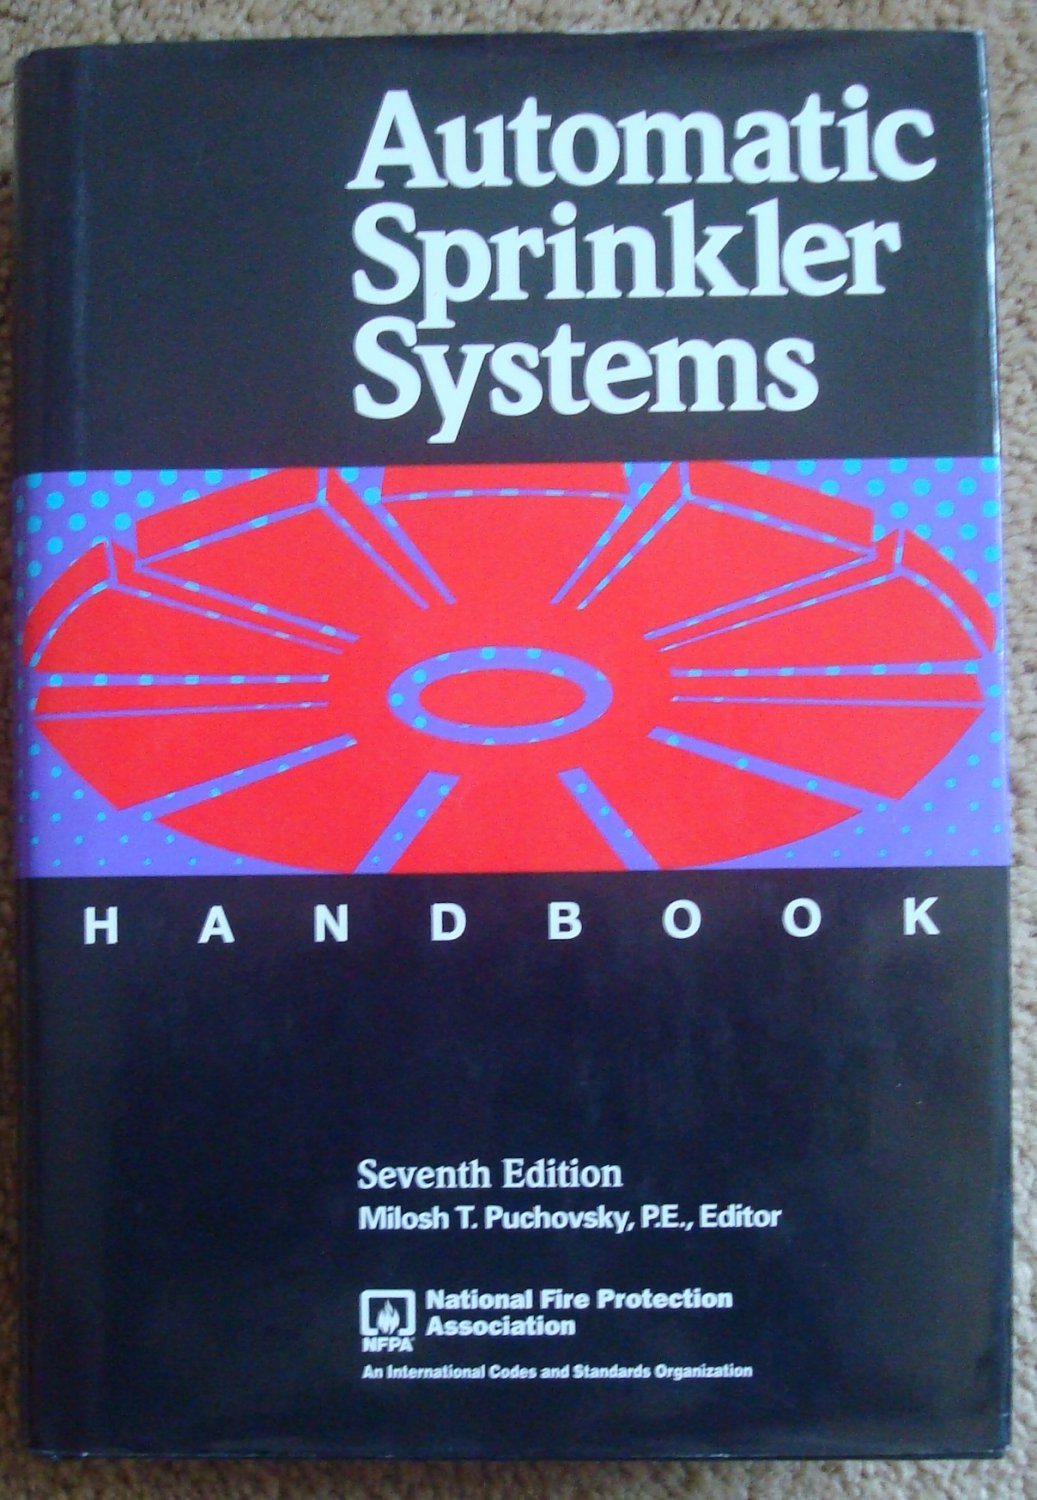 Automatic Sprinkler Systems Handbook - Seventh Edition